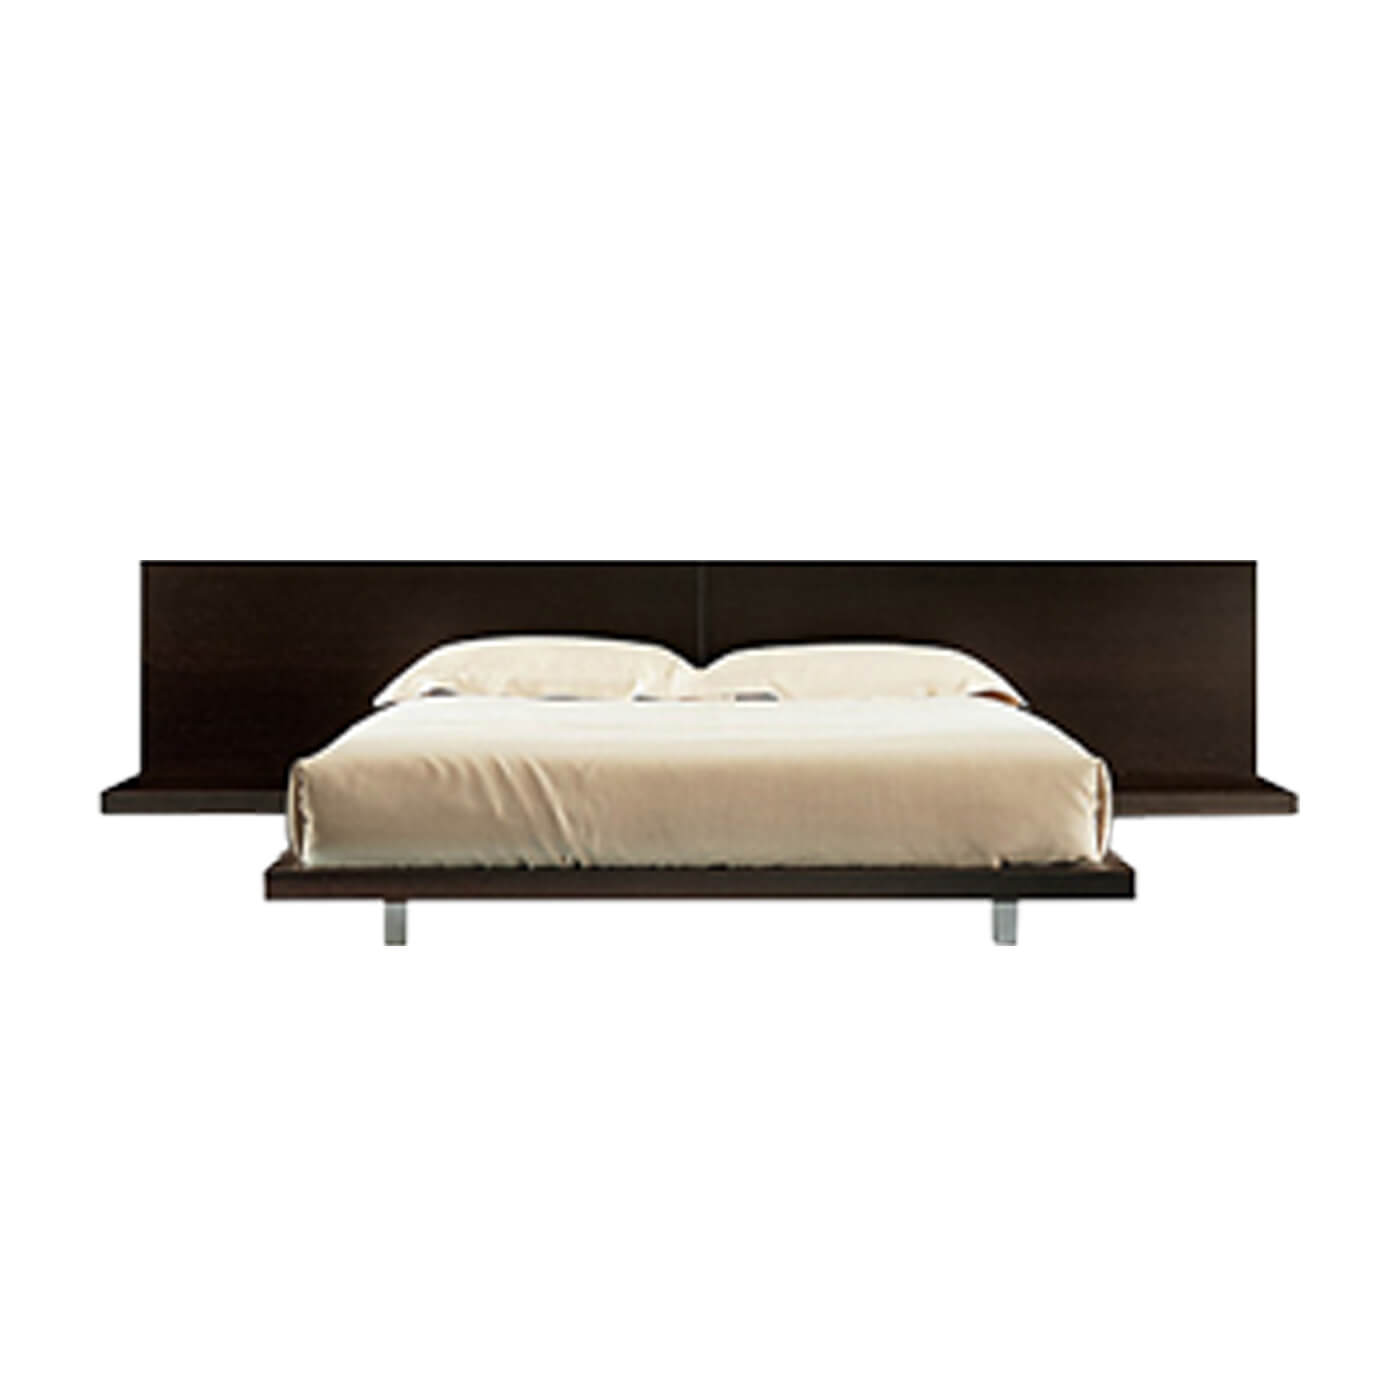 Poliform Ando King size bed